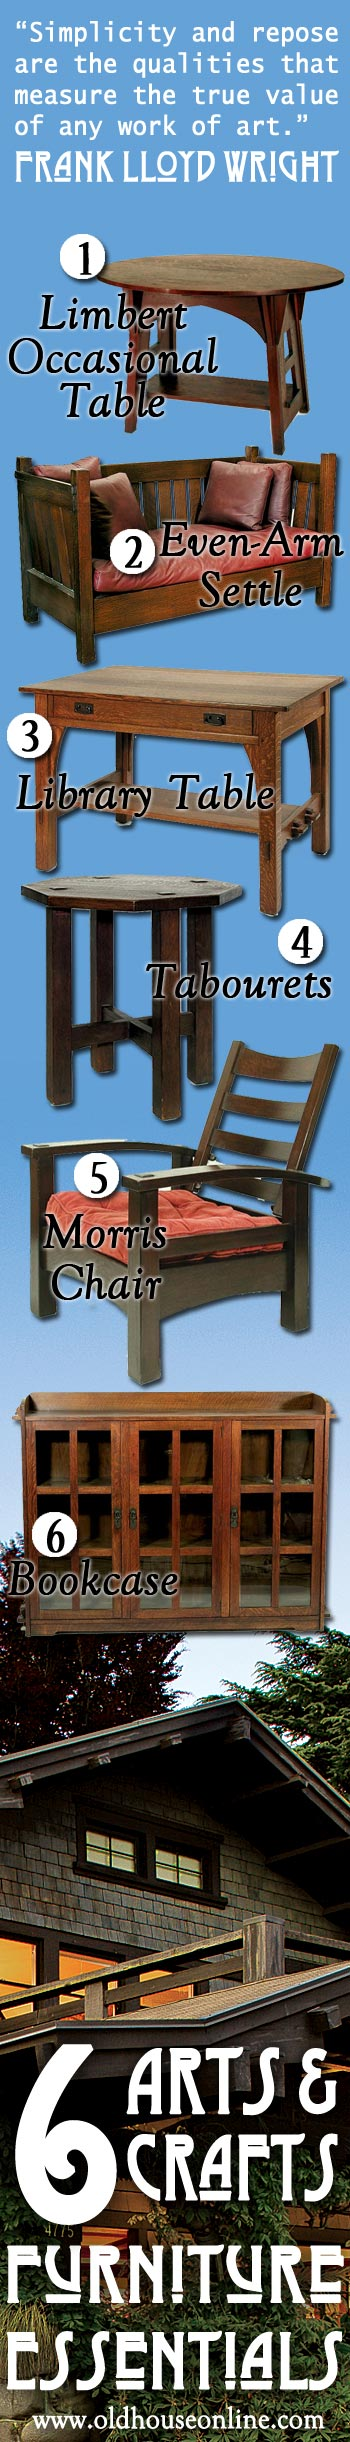 6 Arts & Crafts Furniture Essentials.